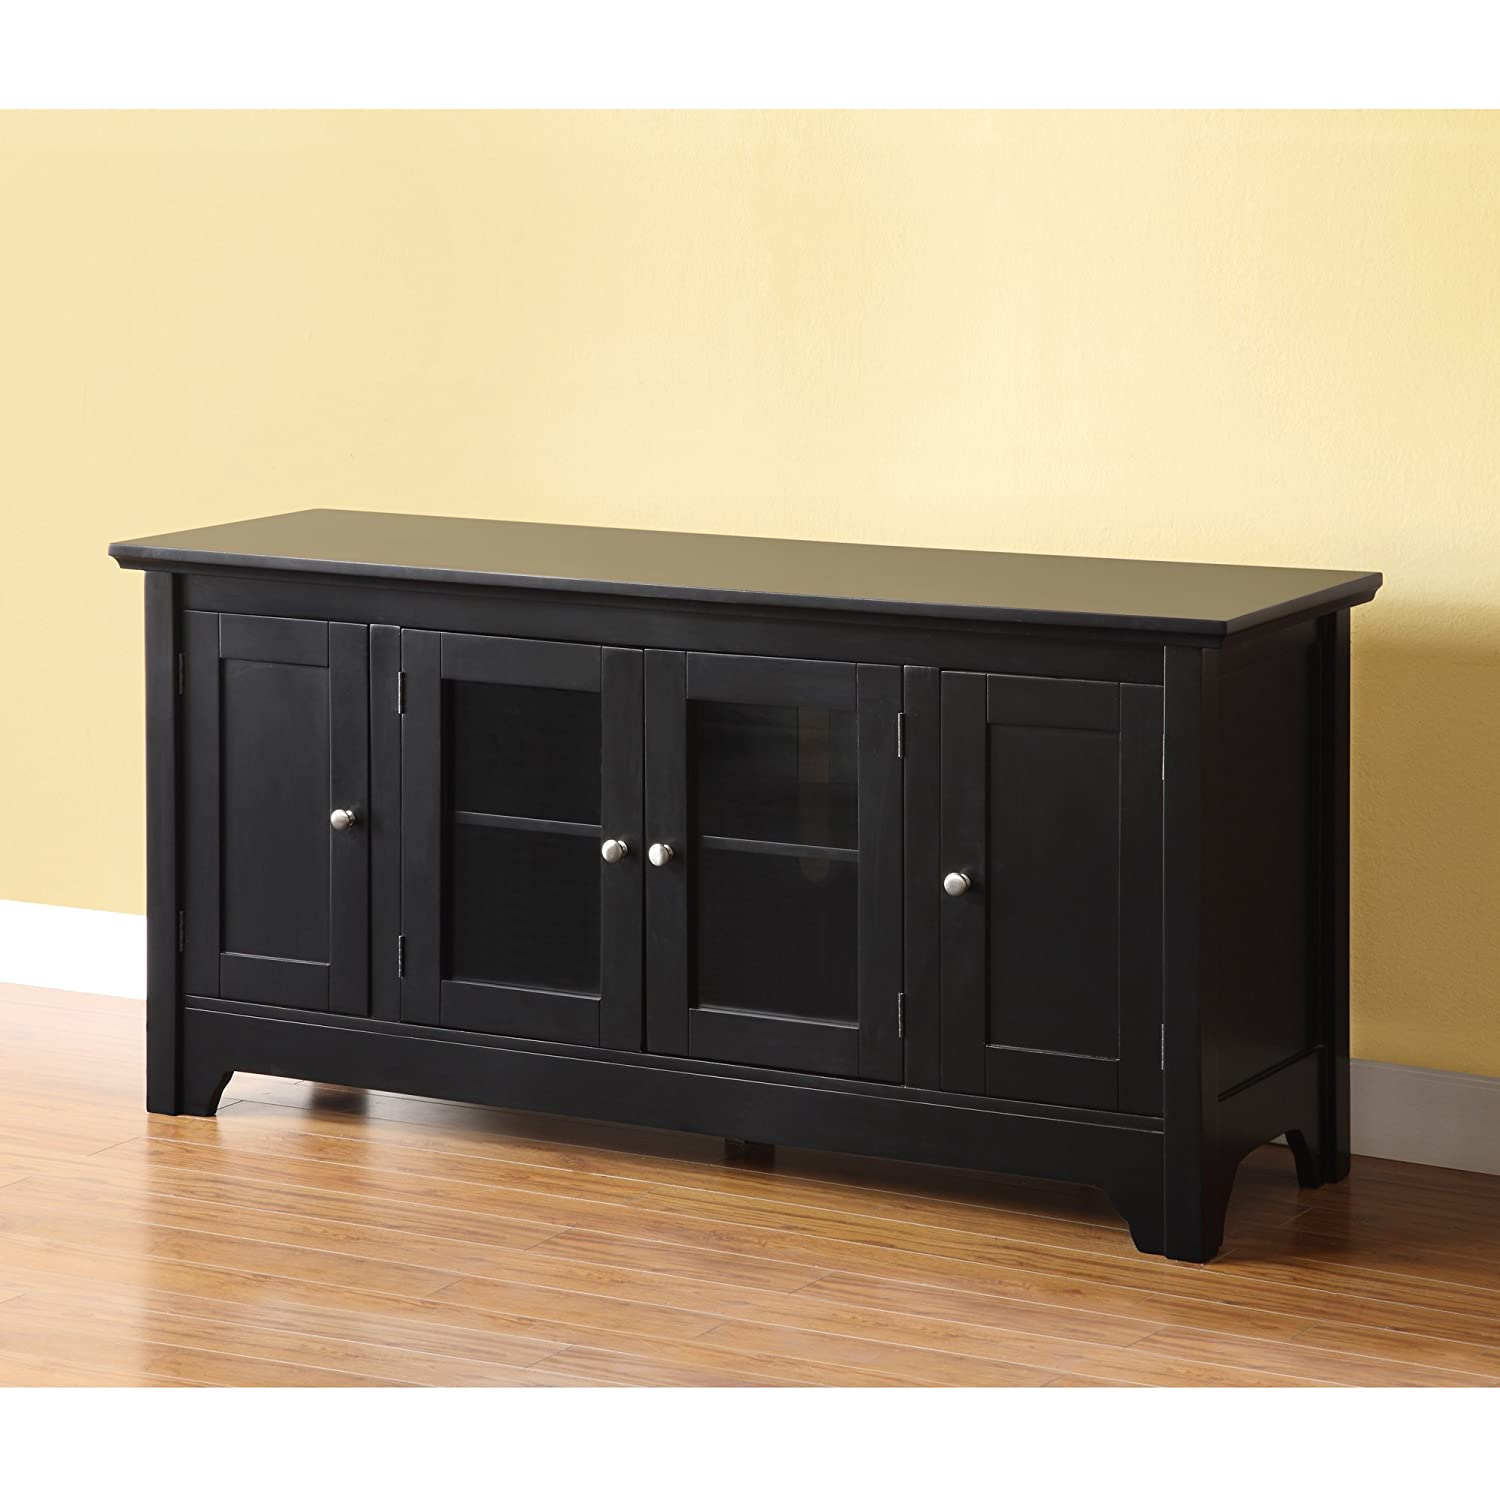 Tv Stand Black Amazoncom Walker Edison 53 Wood Tv Stand Console With Storage